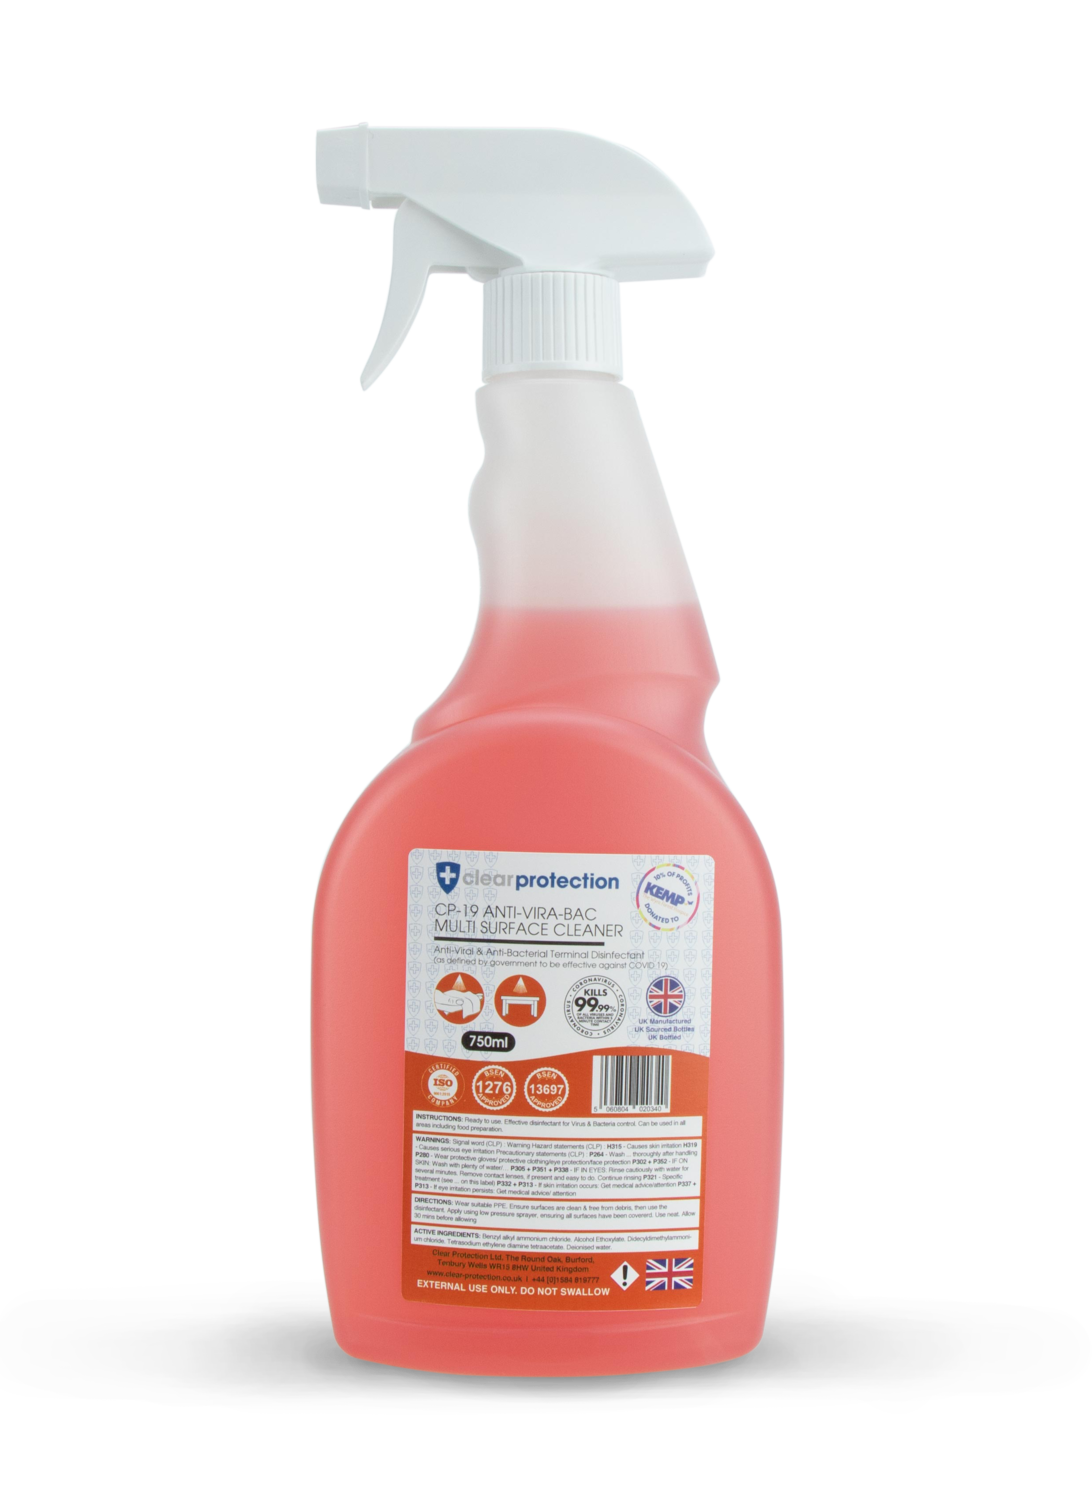 CP-19 Anti-Vira-Bac Multi-Surface Cleaner with Trigger Spray - 750ml